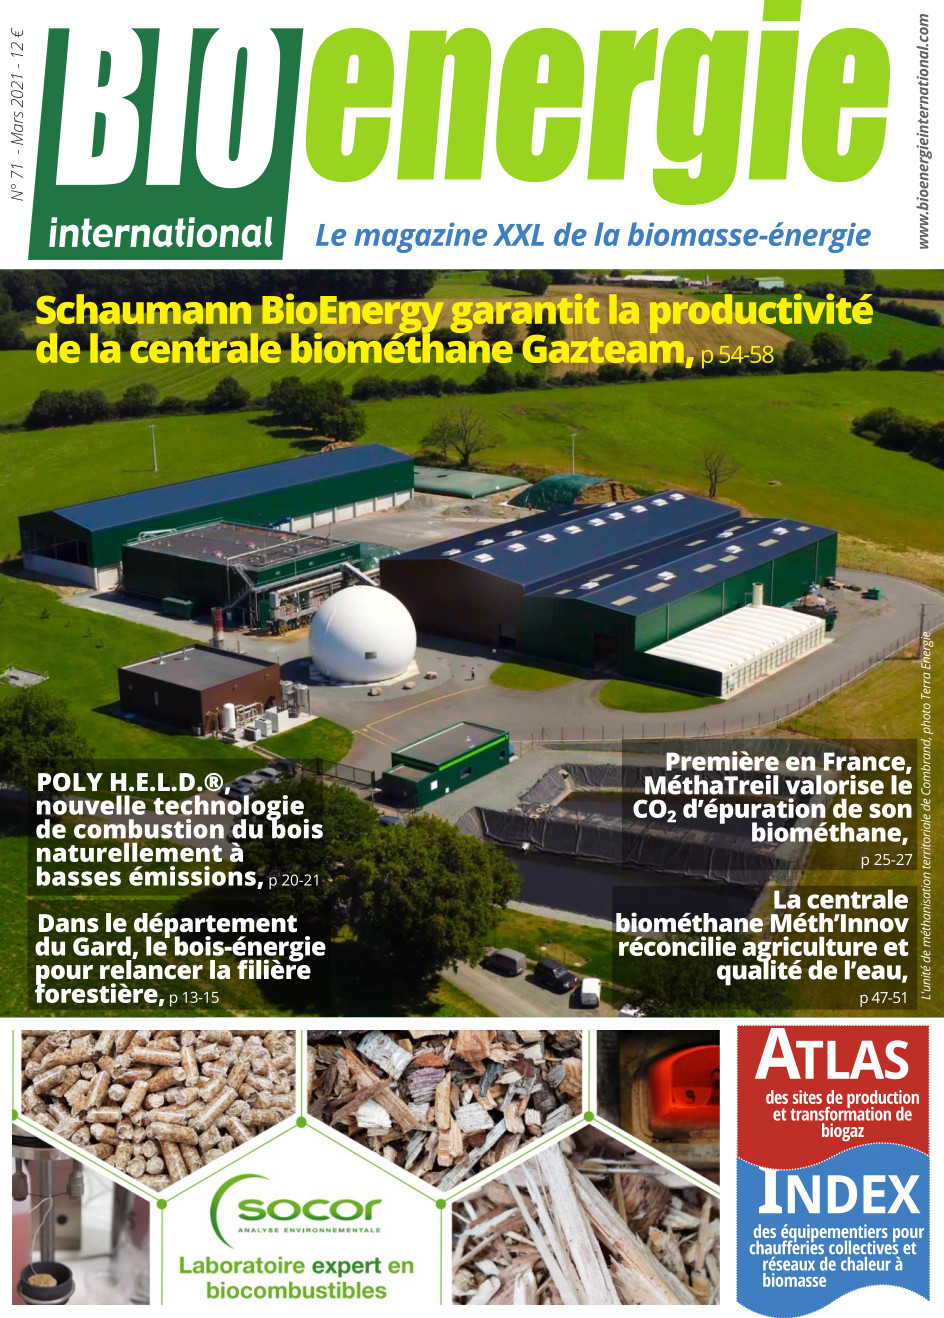 Bioénergie International n°71 – mars 2021